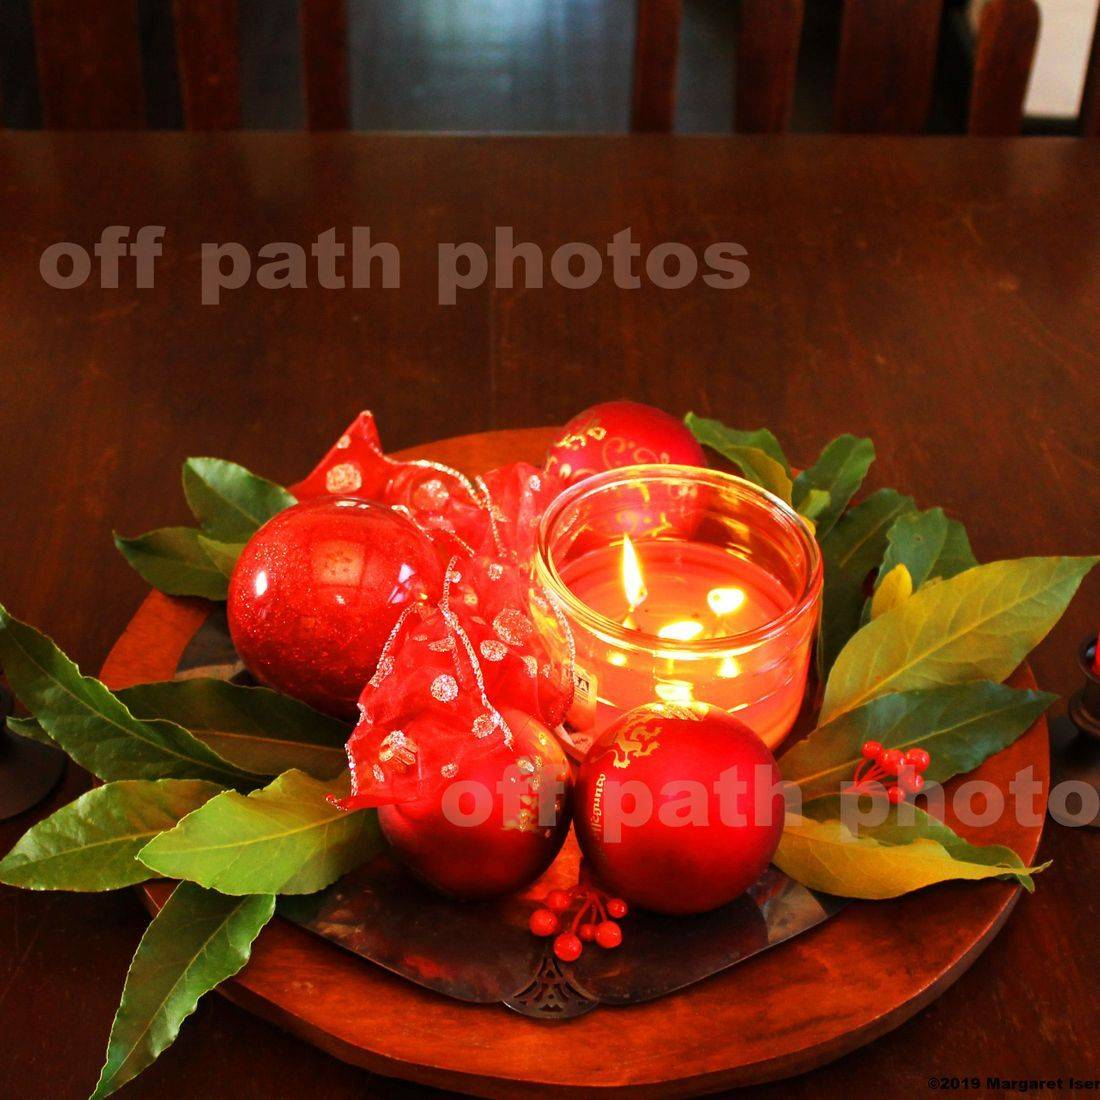 Christmas, candles, decor, holidays, holly, table, photography, red, green, flame